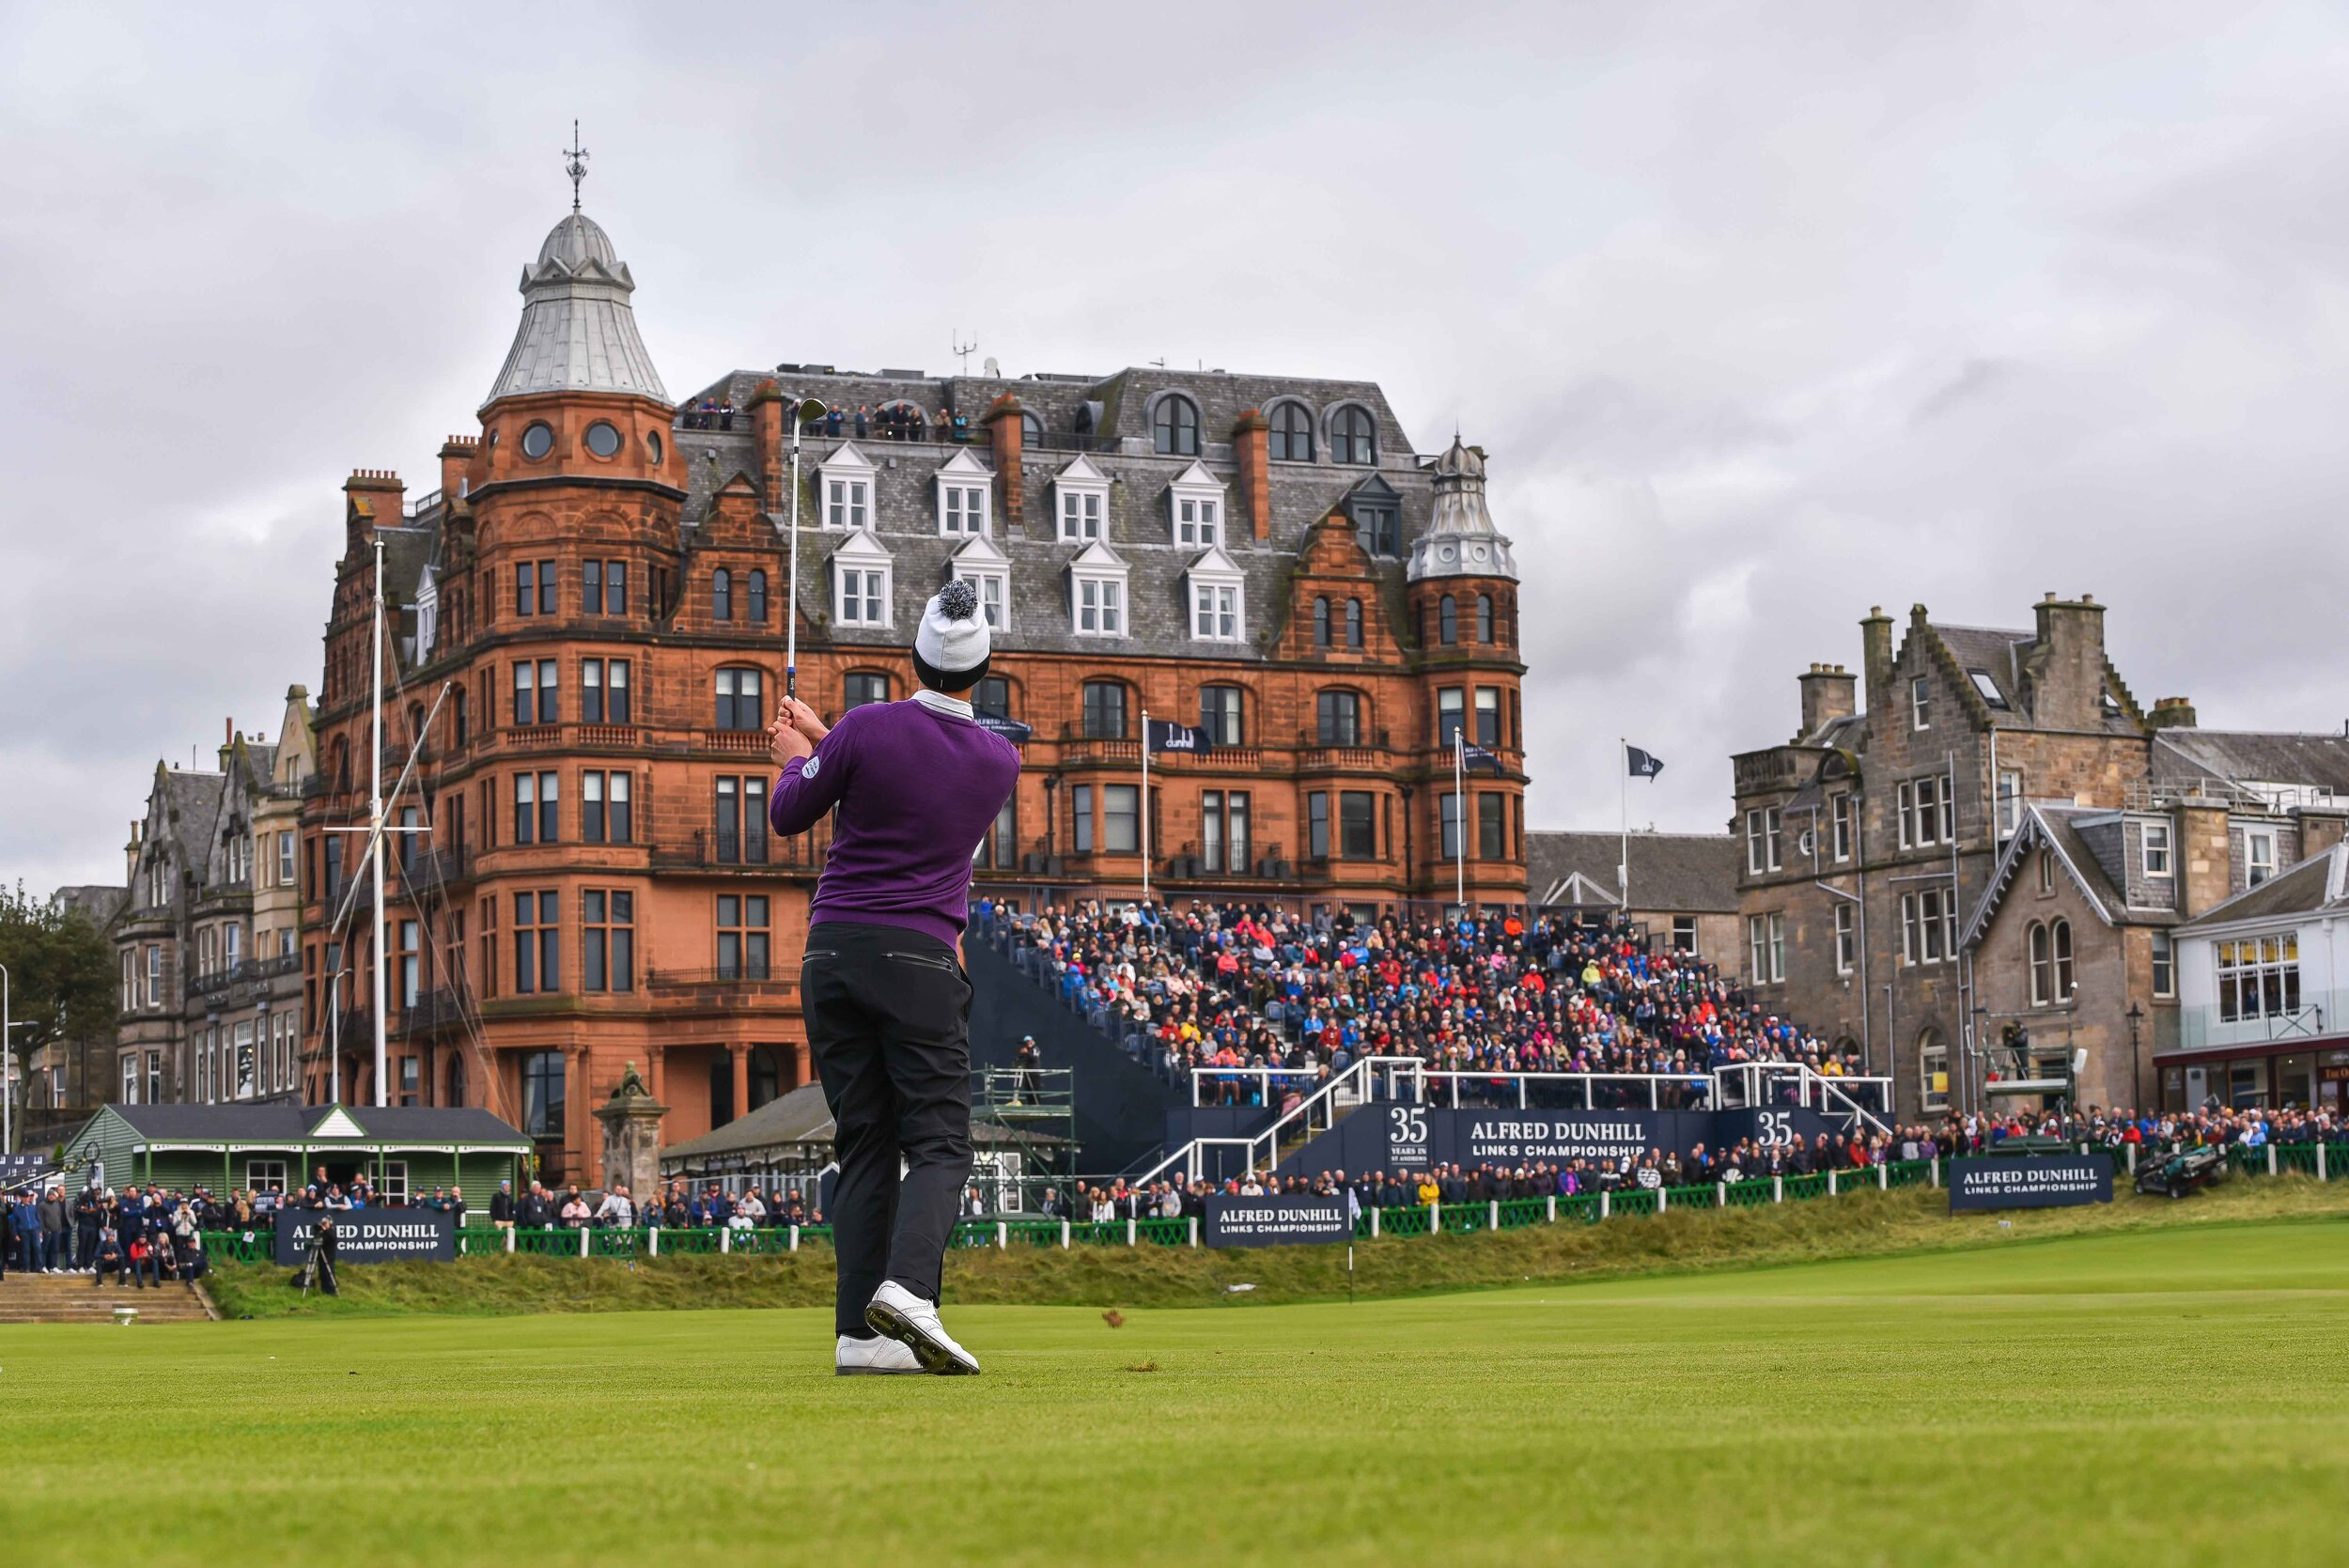 Victor Perez hits his approach into the 18th on the Old Course en route to a one shot victory.